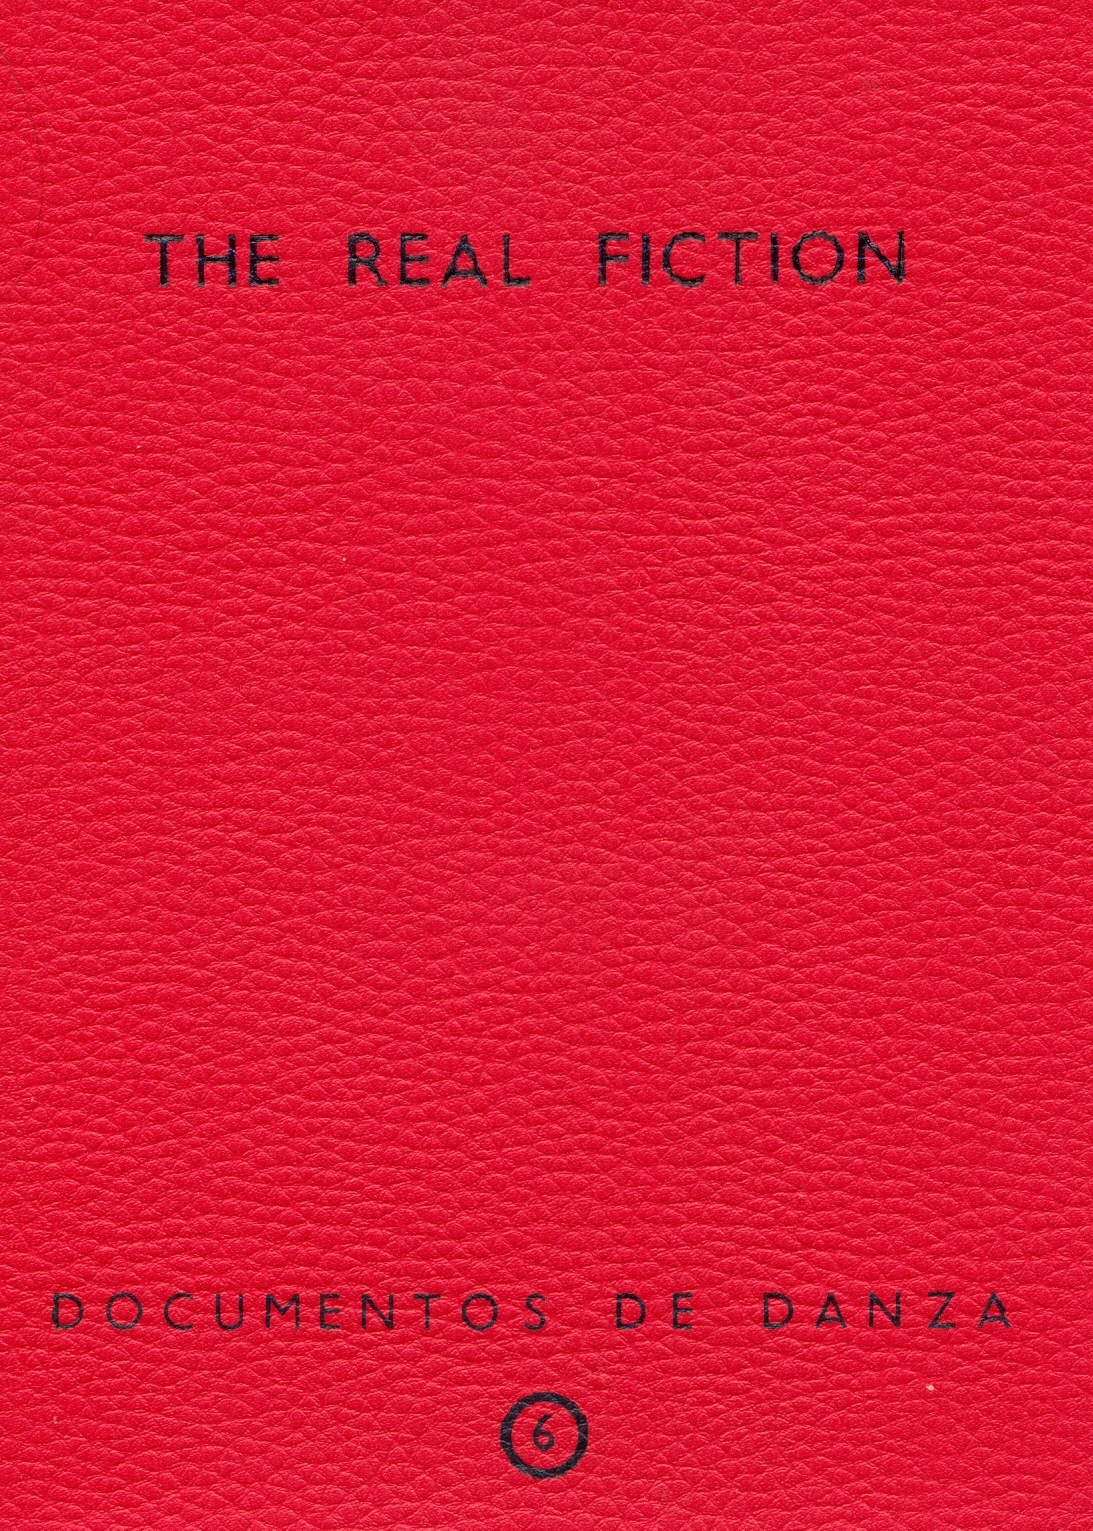 THE REAL FICTION